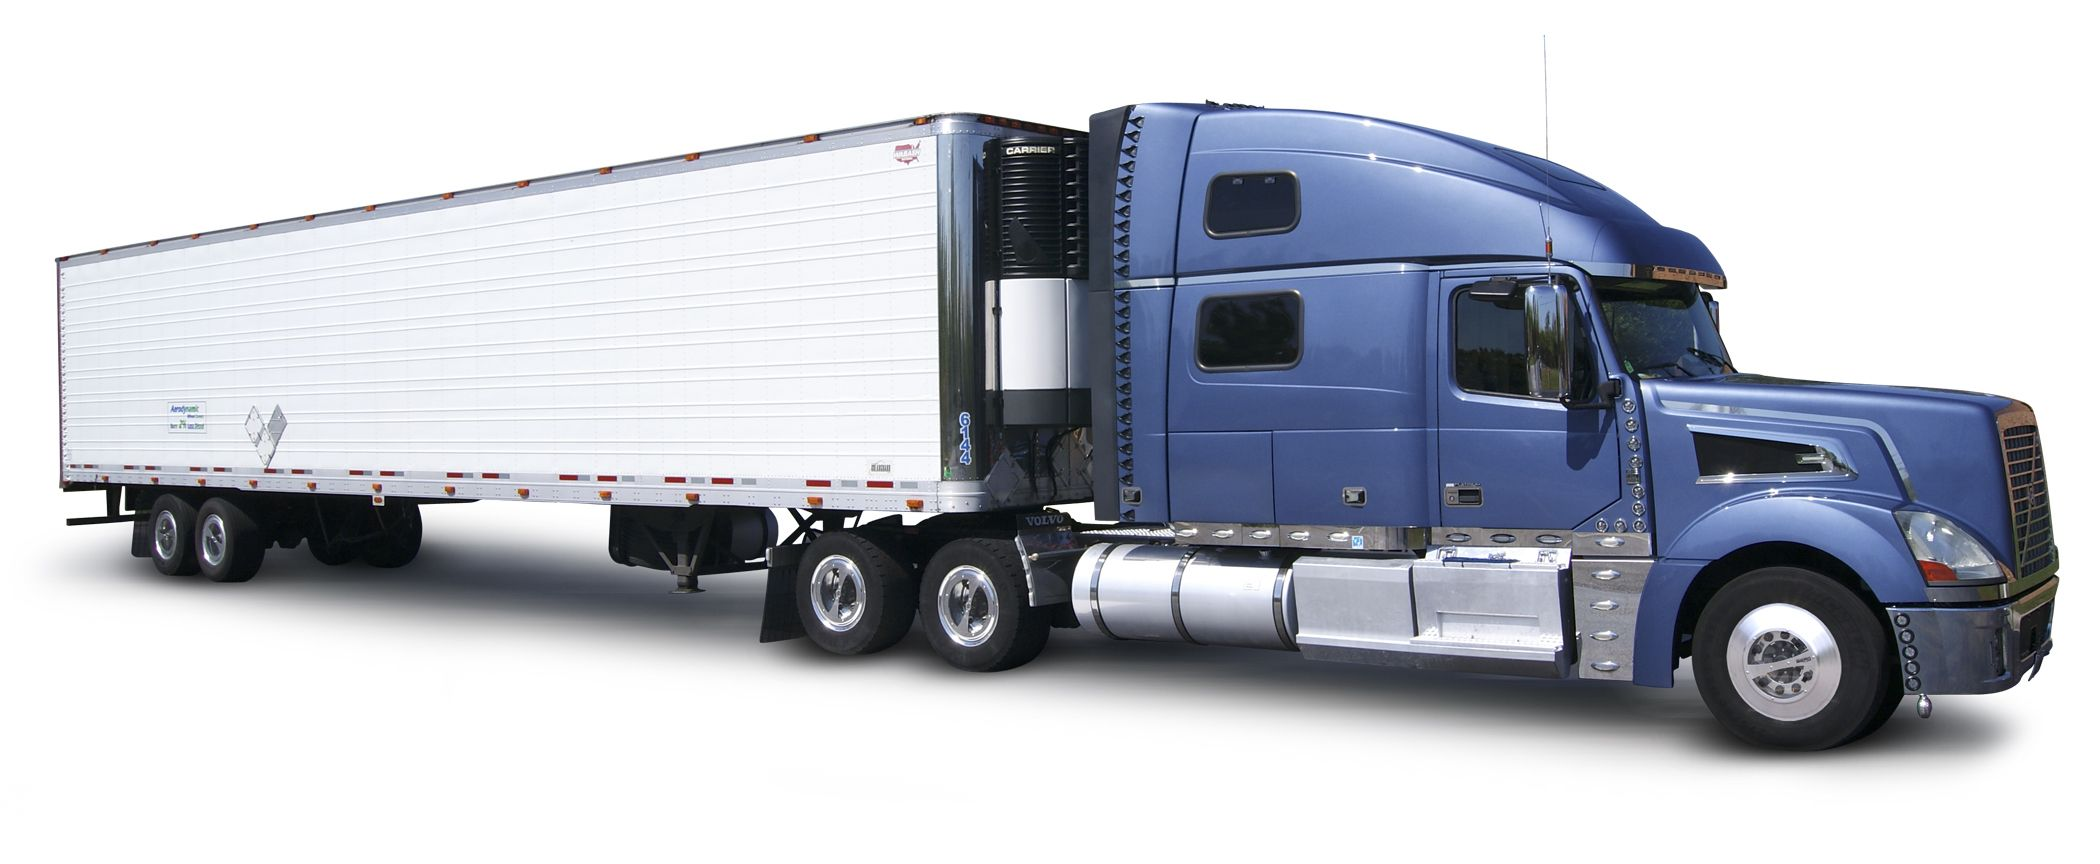 Semi Tractor Trailer : Toy semi trucks and trailers jpg truck